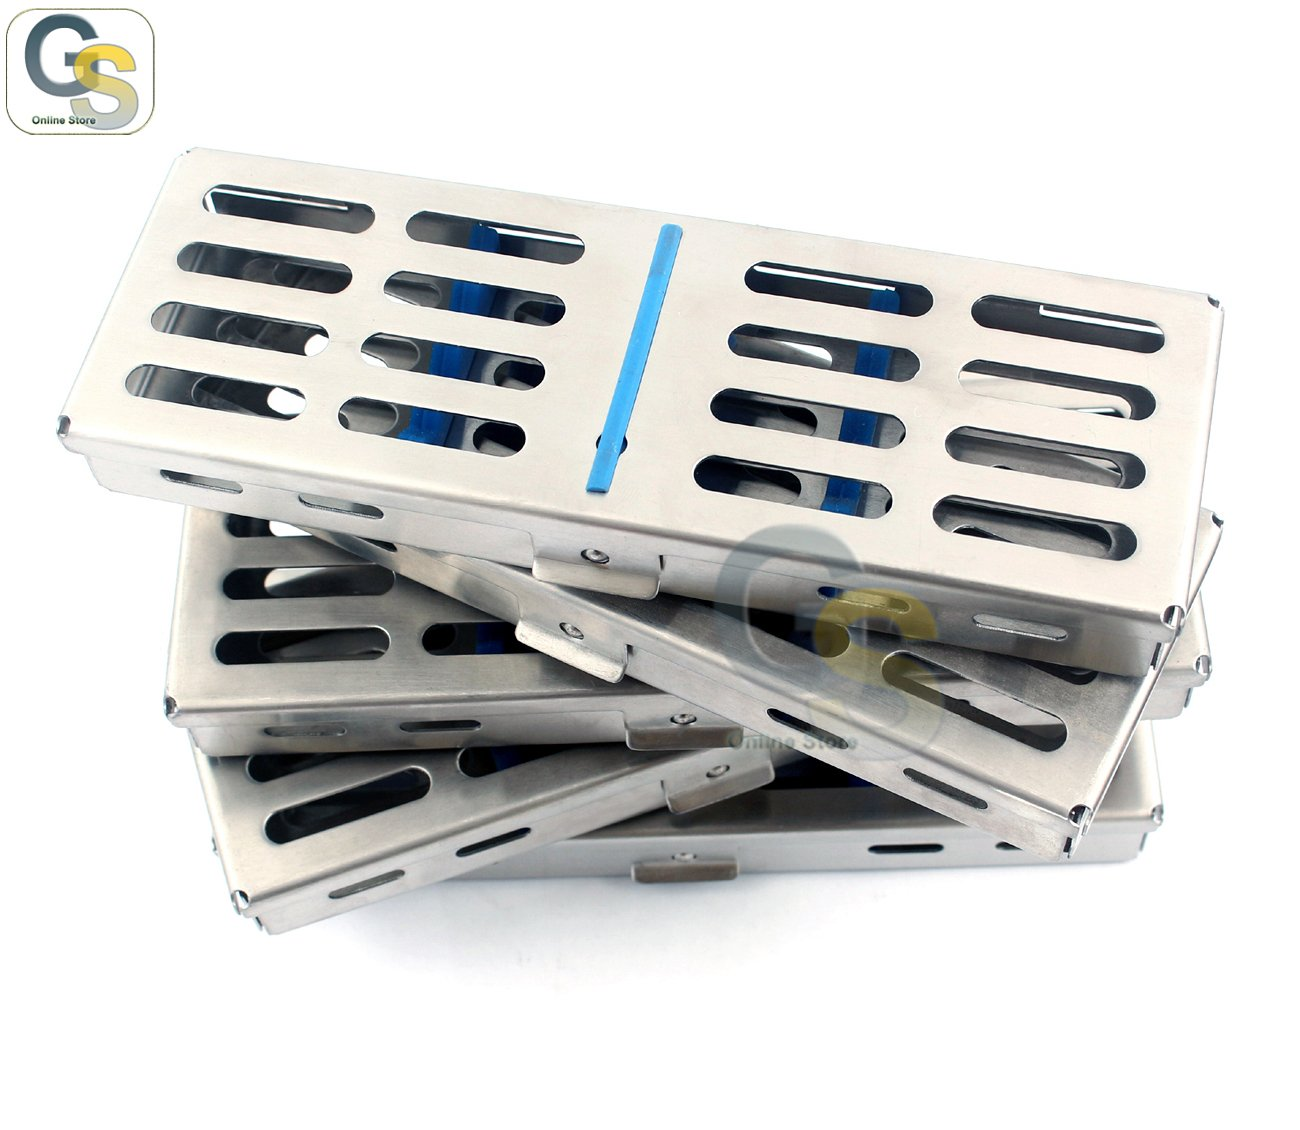 G.S SET OF-5 DENTAL STERILIZATION CASSETTE,AUTOCLAVE TRAY,RACK,5-INSTRUMENTS 7''X2.5'' BEST QUALITY by G.S SURGICAL (Image #1)